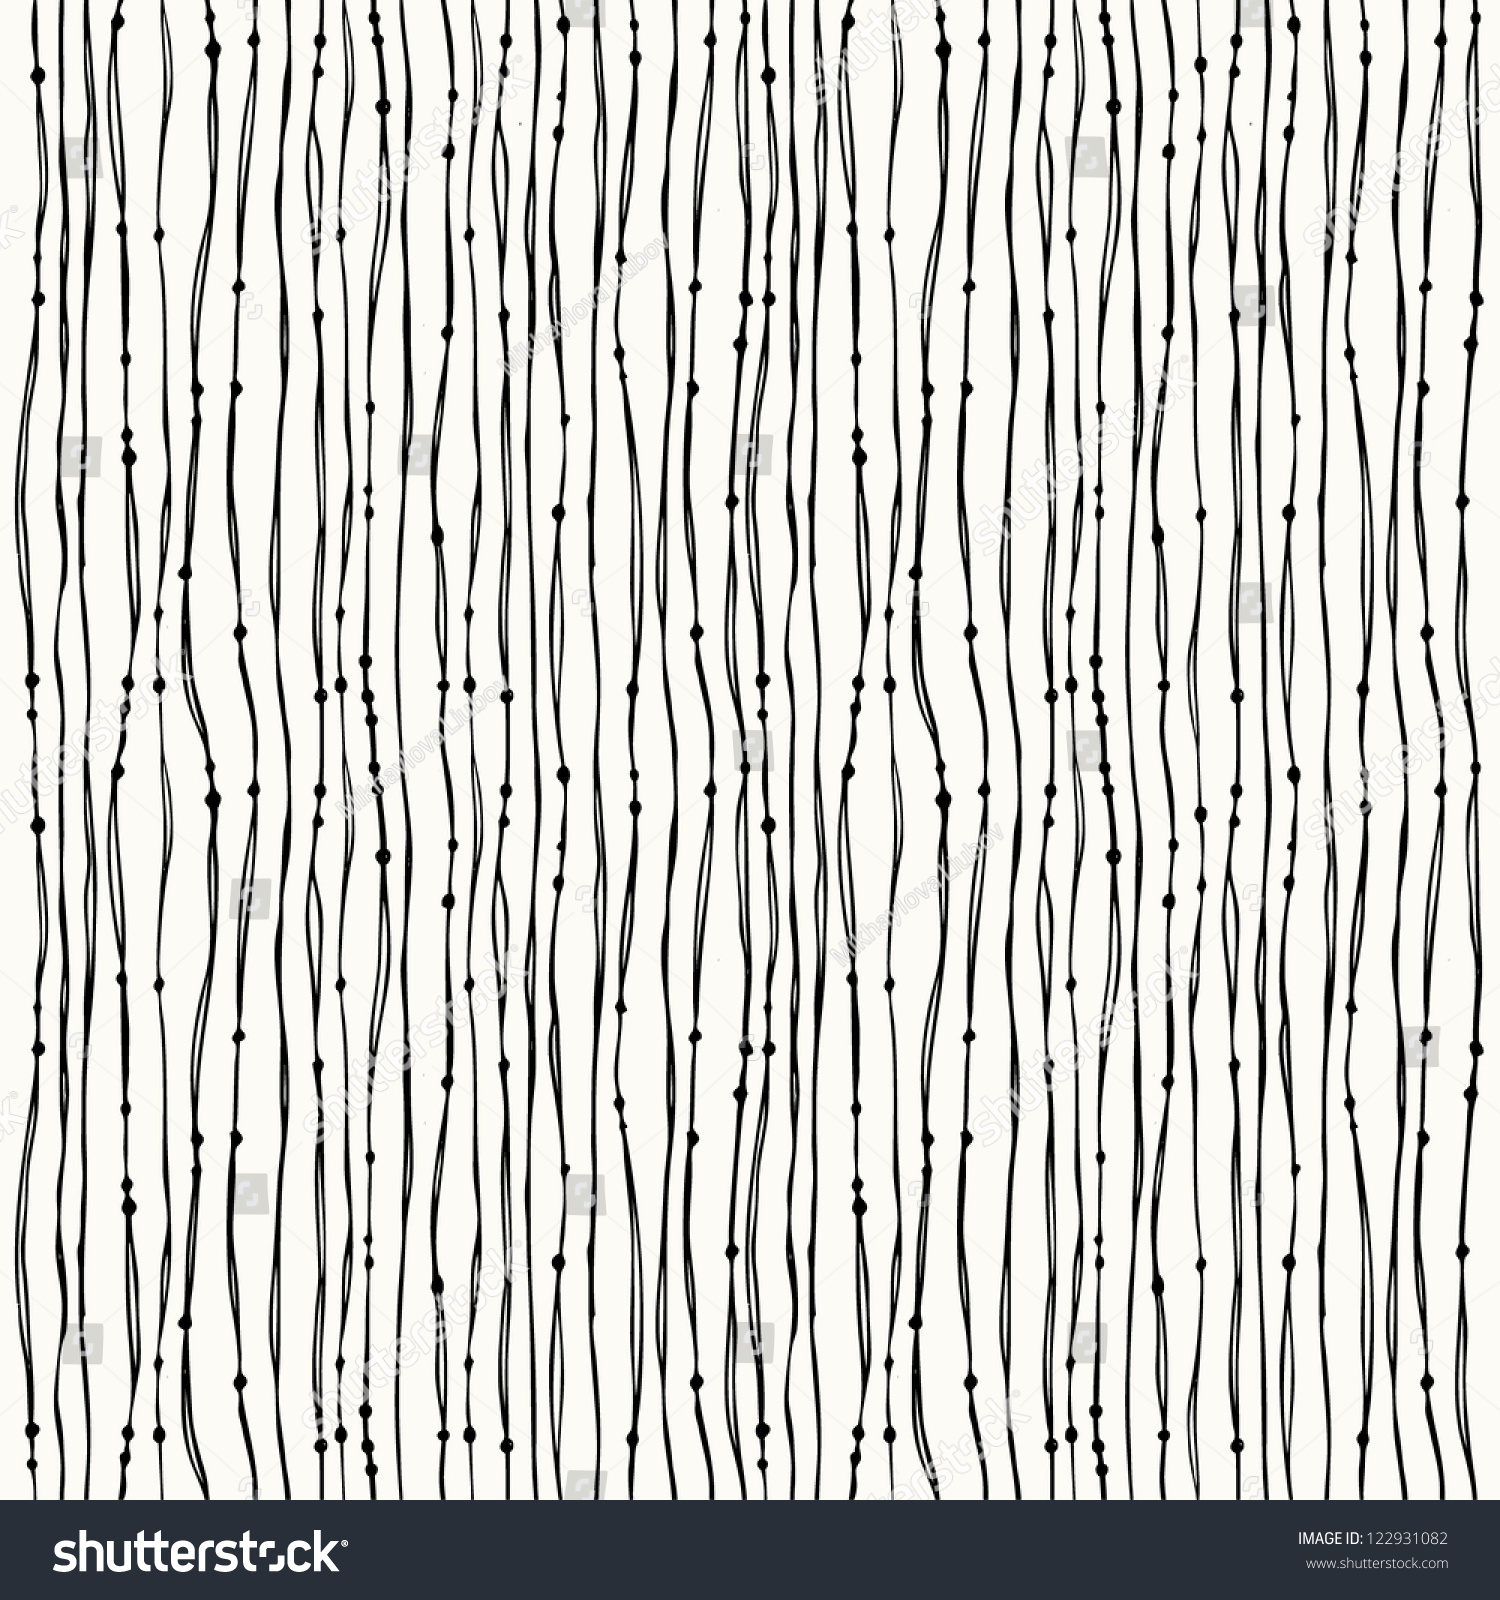 Line Texture Black And White : Seamless black white abstract hand drawn stock vector